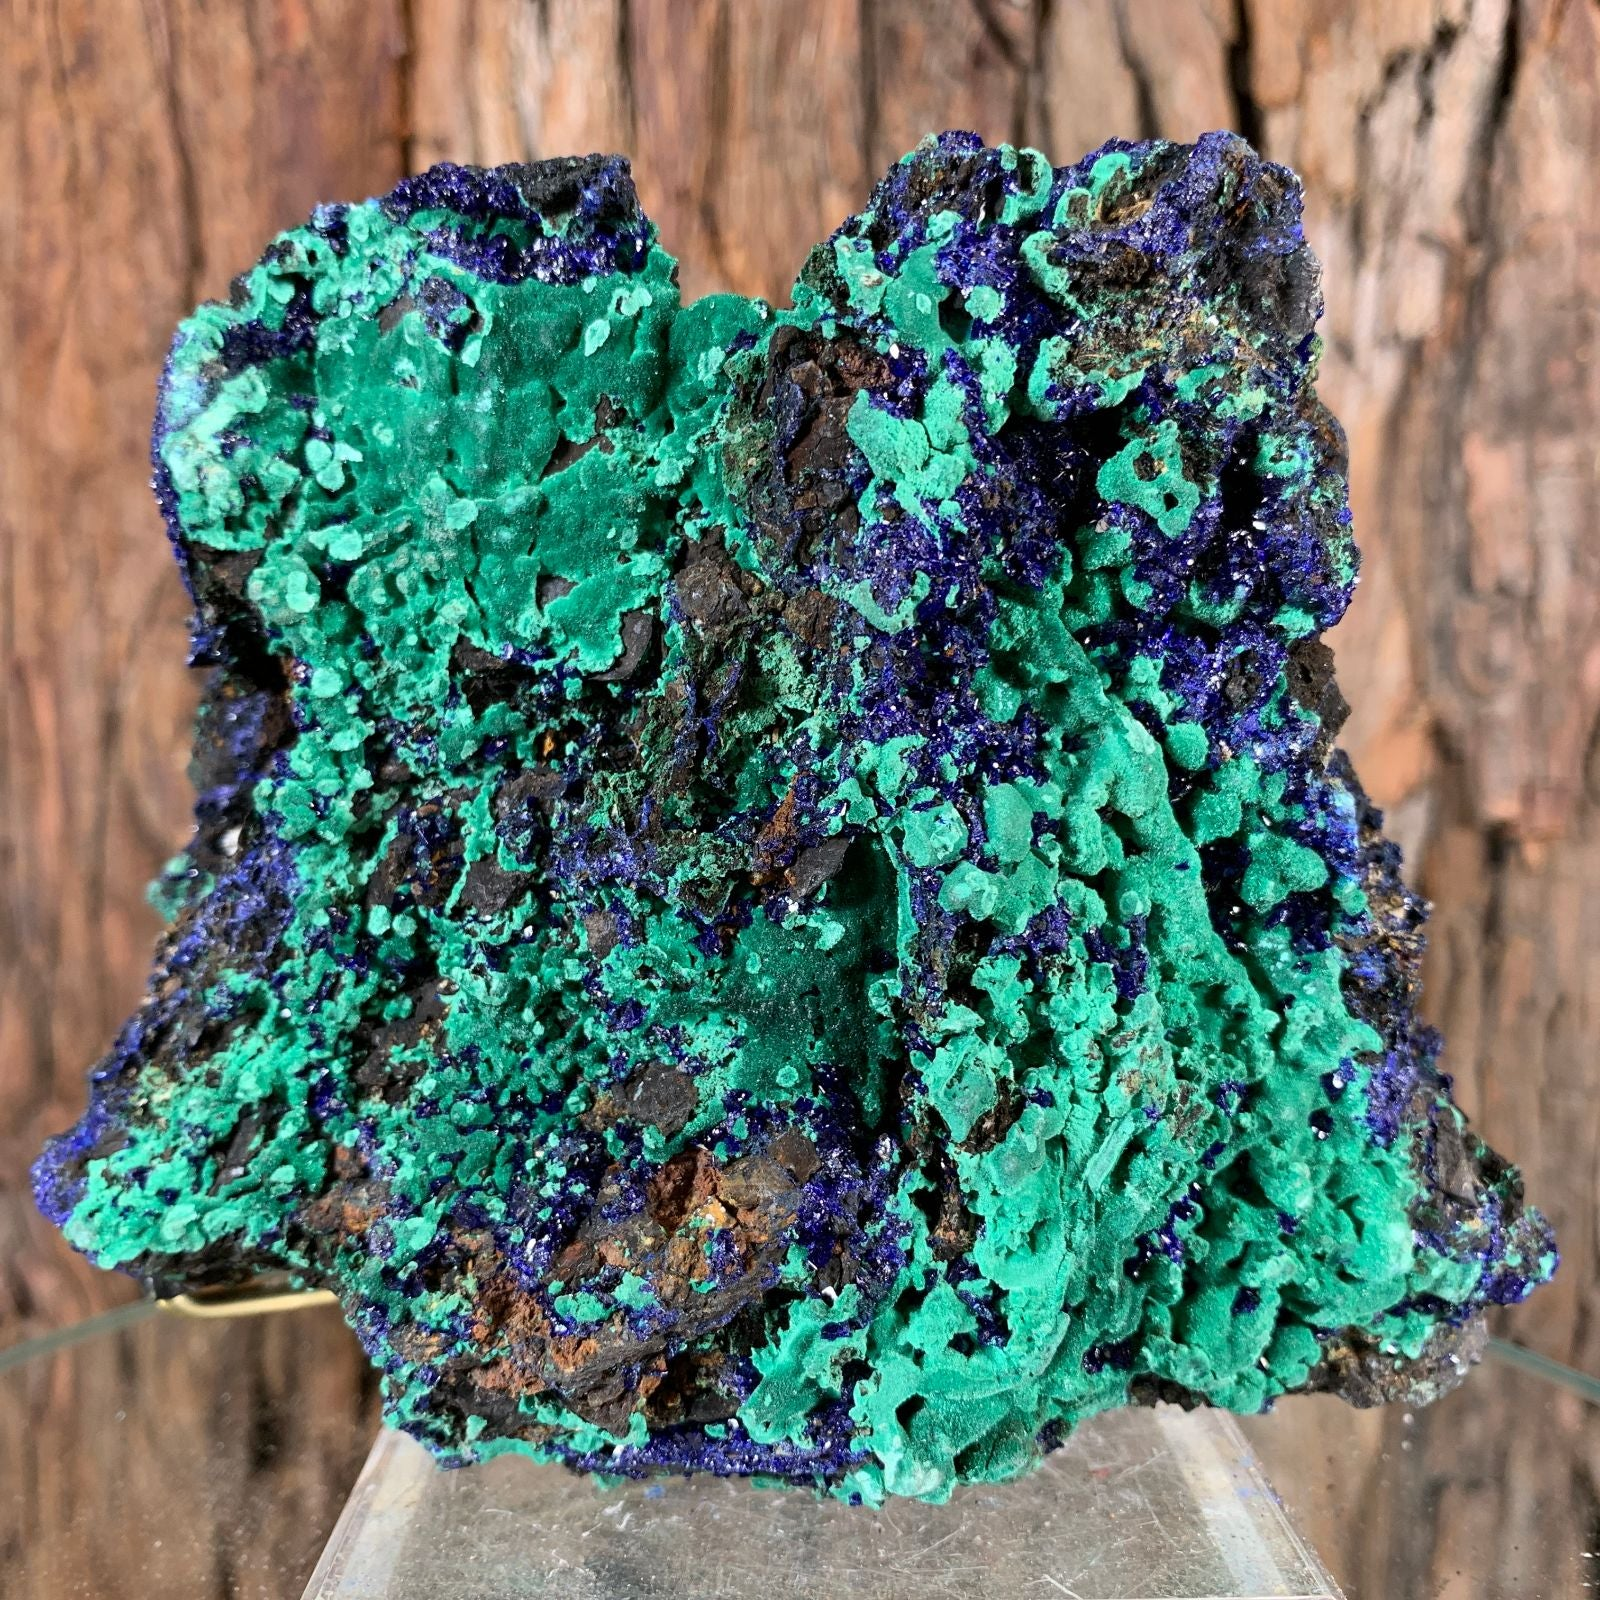 13cm 862g Azurite with Malachite from Sepon Mine, Laos